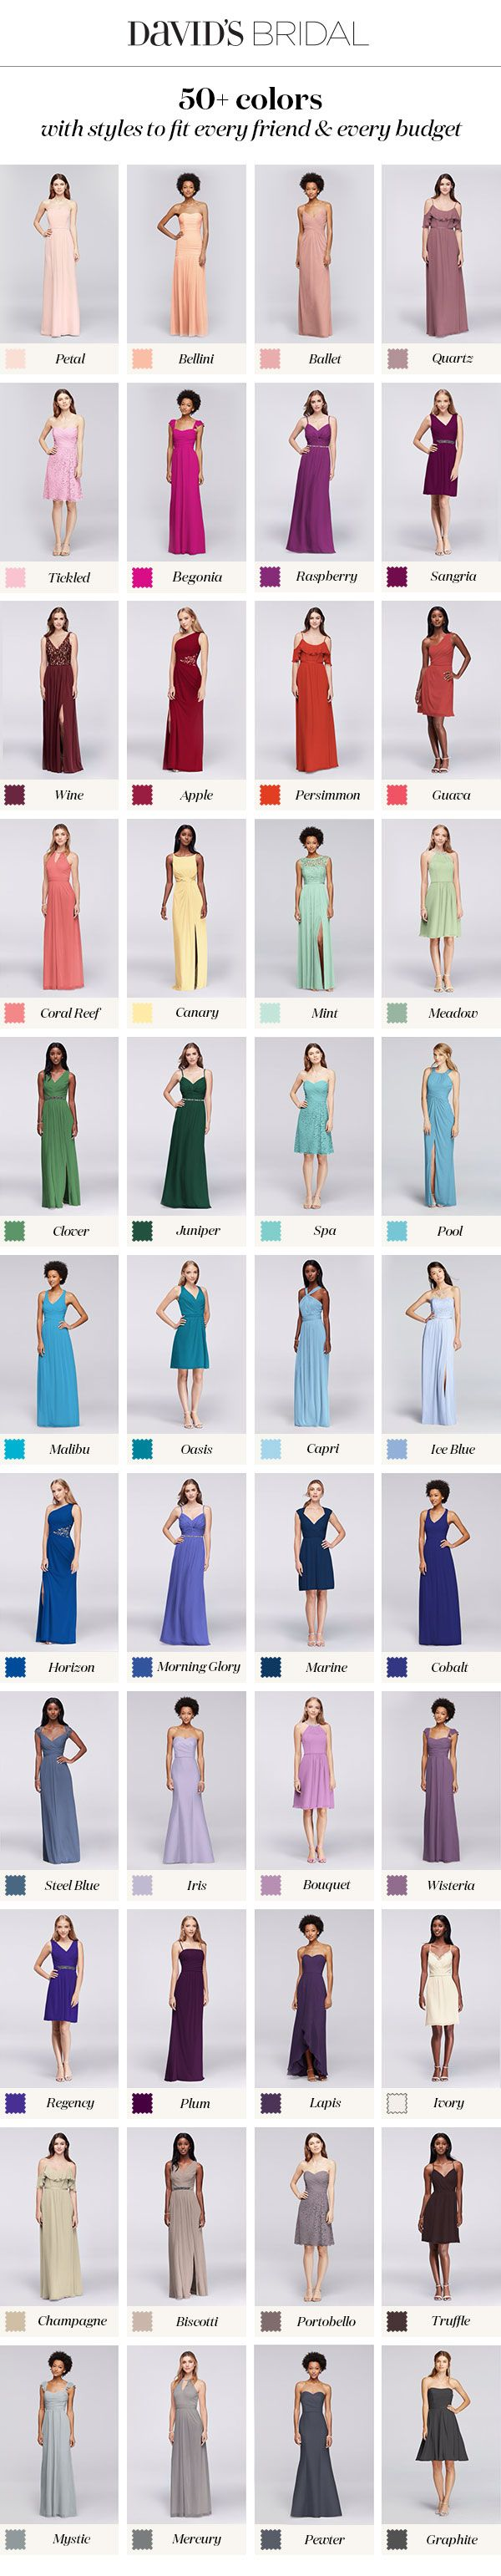 Bridesmaid dresses to match your style, size, budget & color.